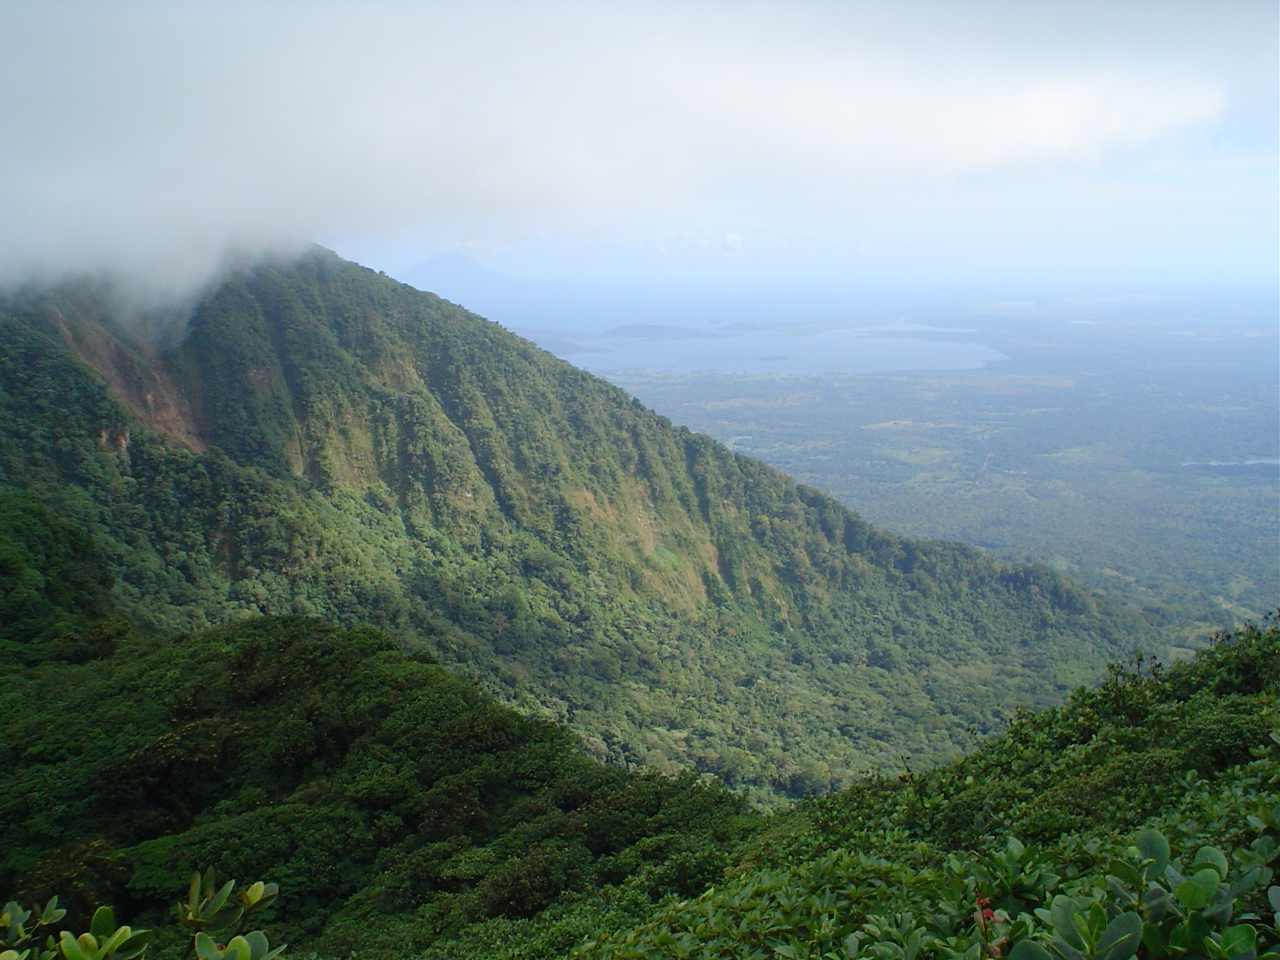 Fun Geography Facts For Kids On Nicaragua Image Of Mombacho Mountains In